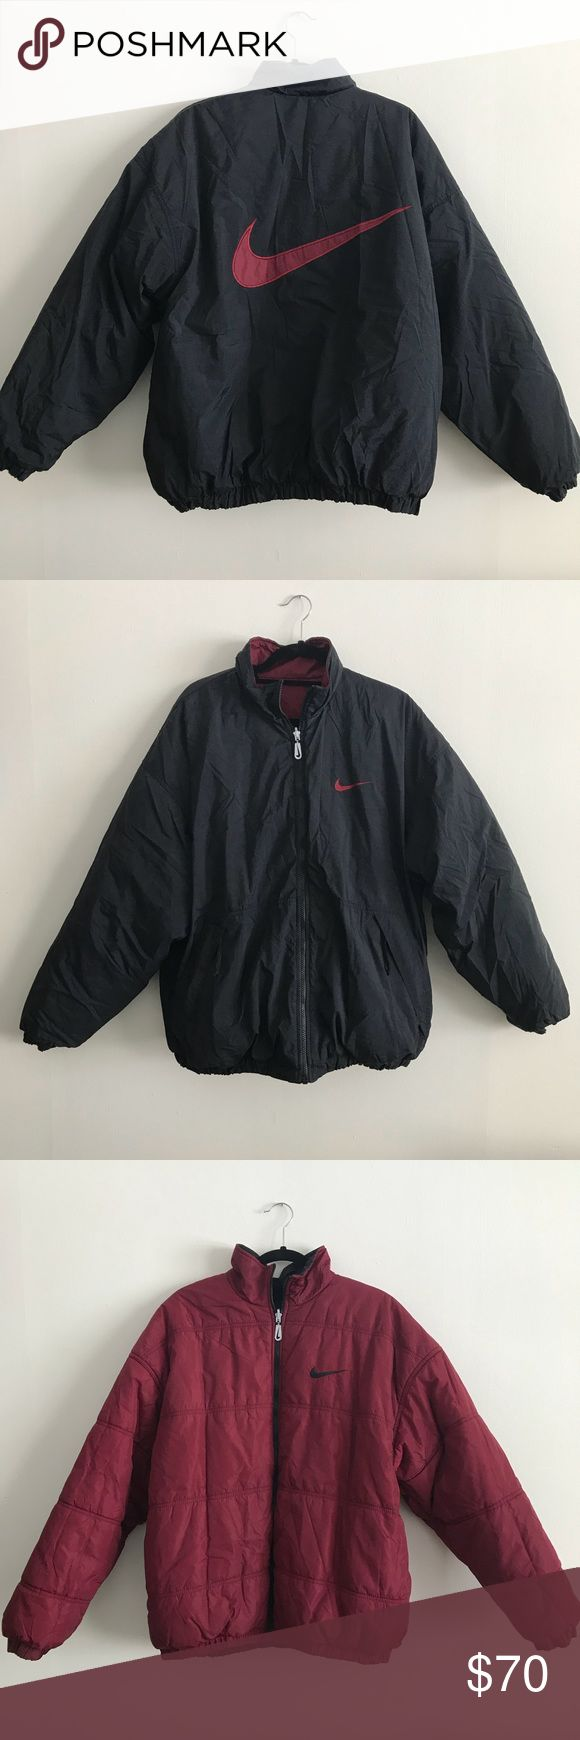 Vintage Reversible Nike Coat Get two looks for the price of one with this vintage reversible Nike coat in size large! Great vintage condition with no stains or holes. Features two front pockets. Nike Jackets & Coats